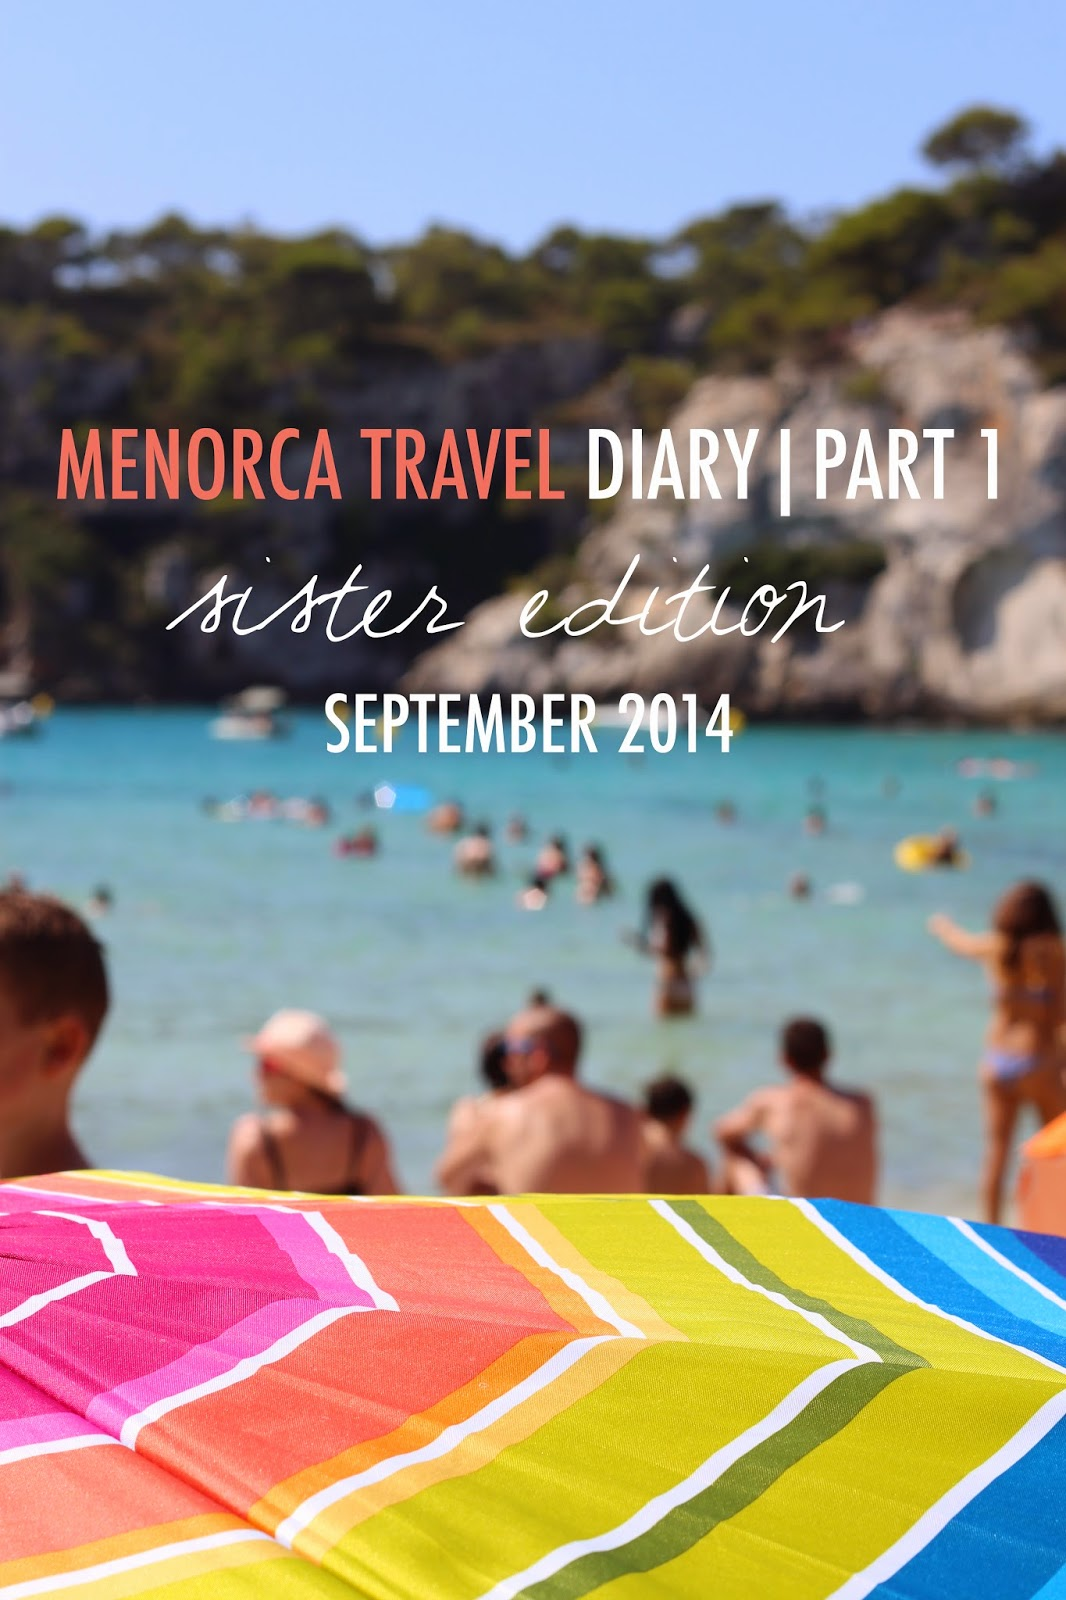 Menorca Travel Diary | Part 1